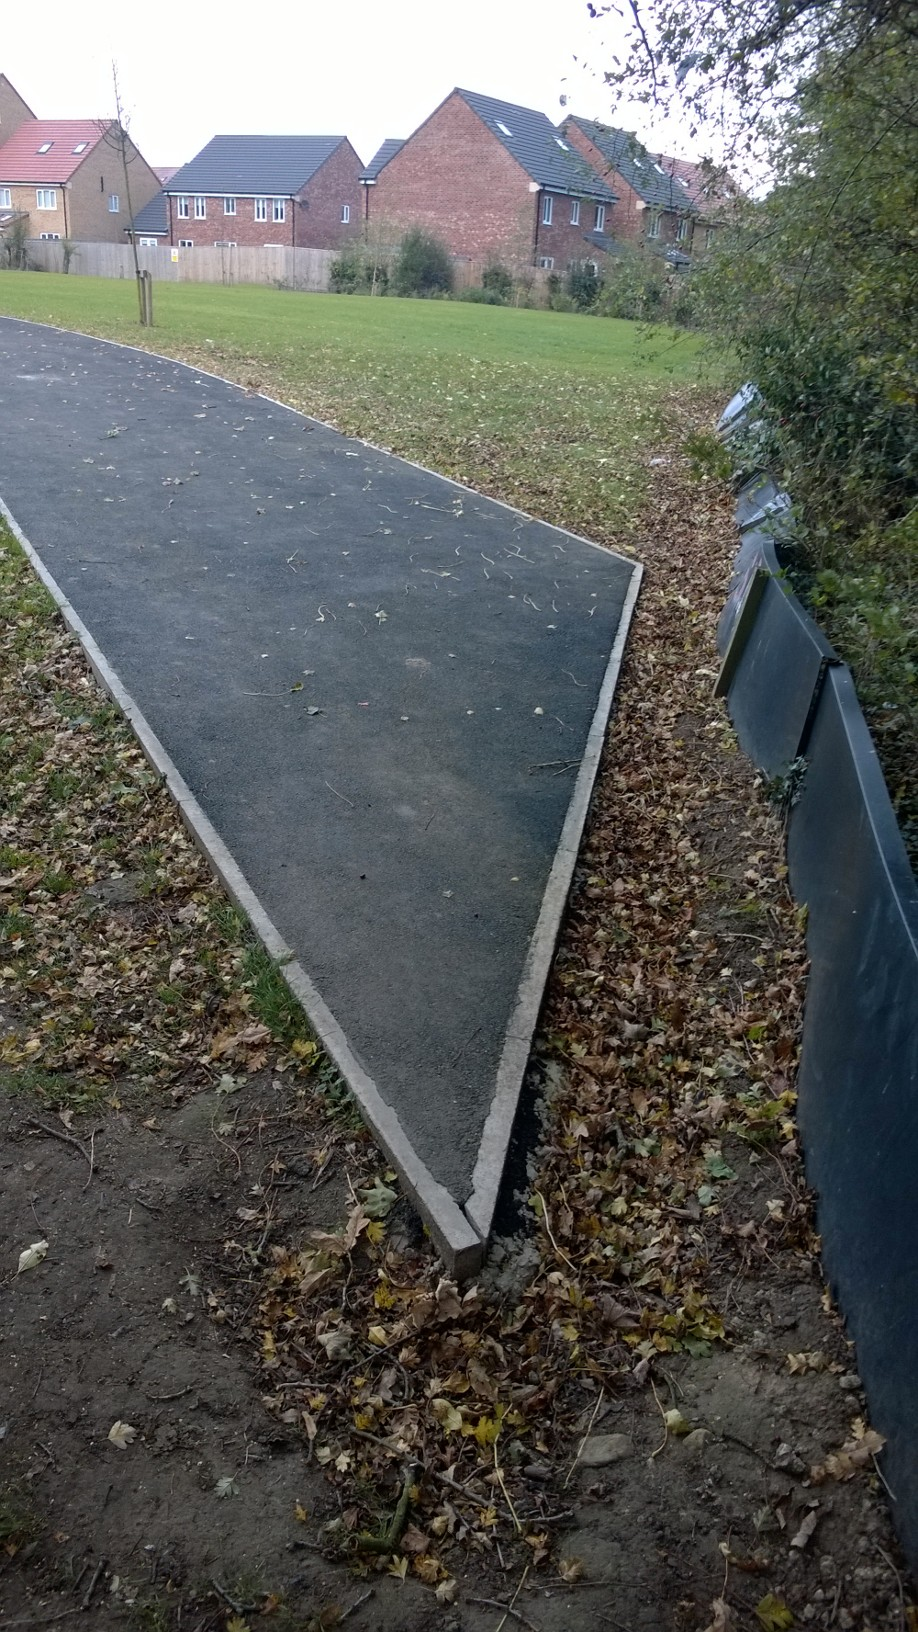 Revival cycle track ends